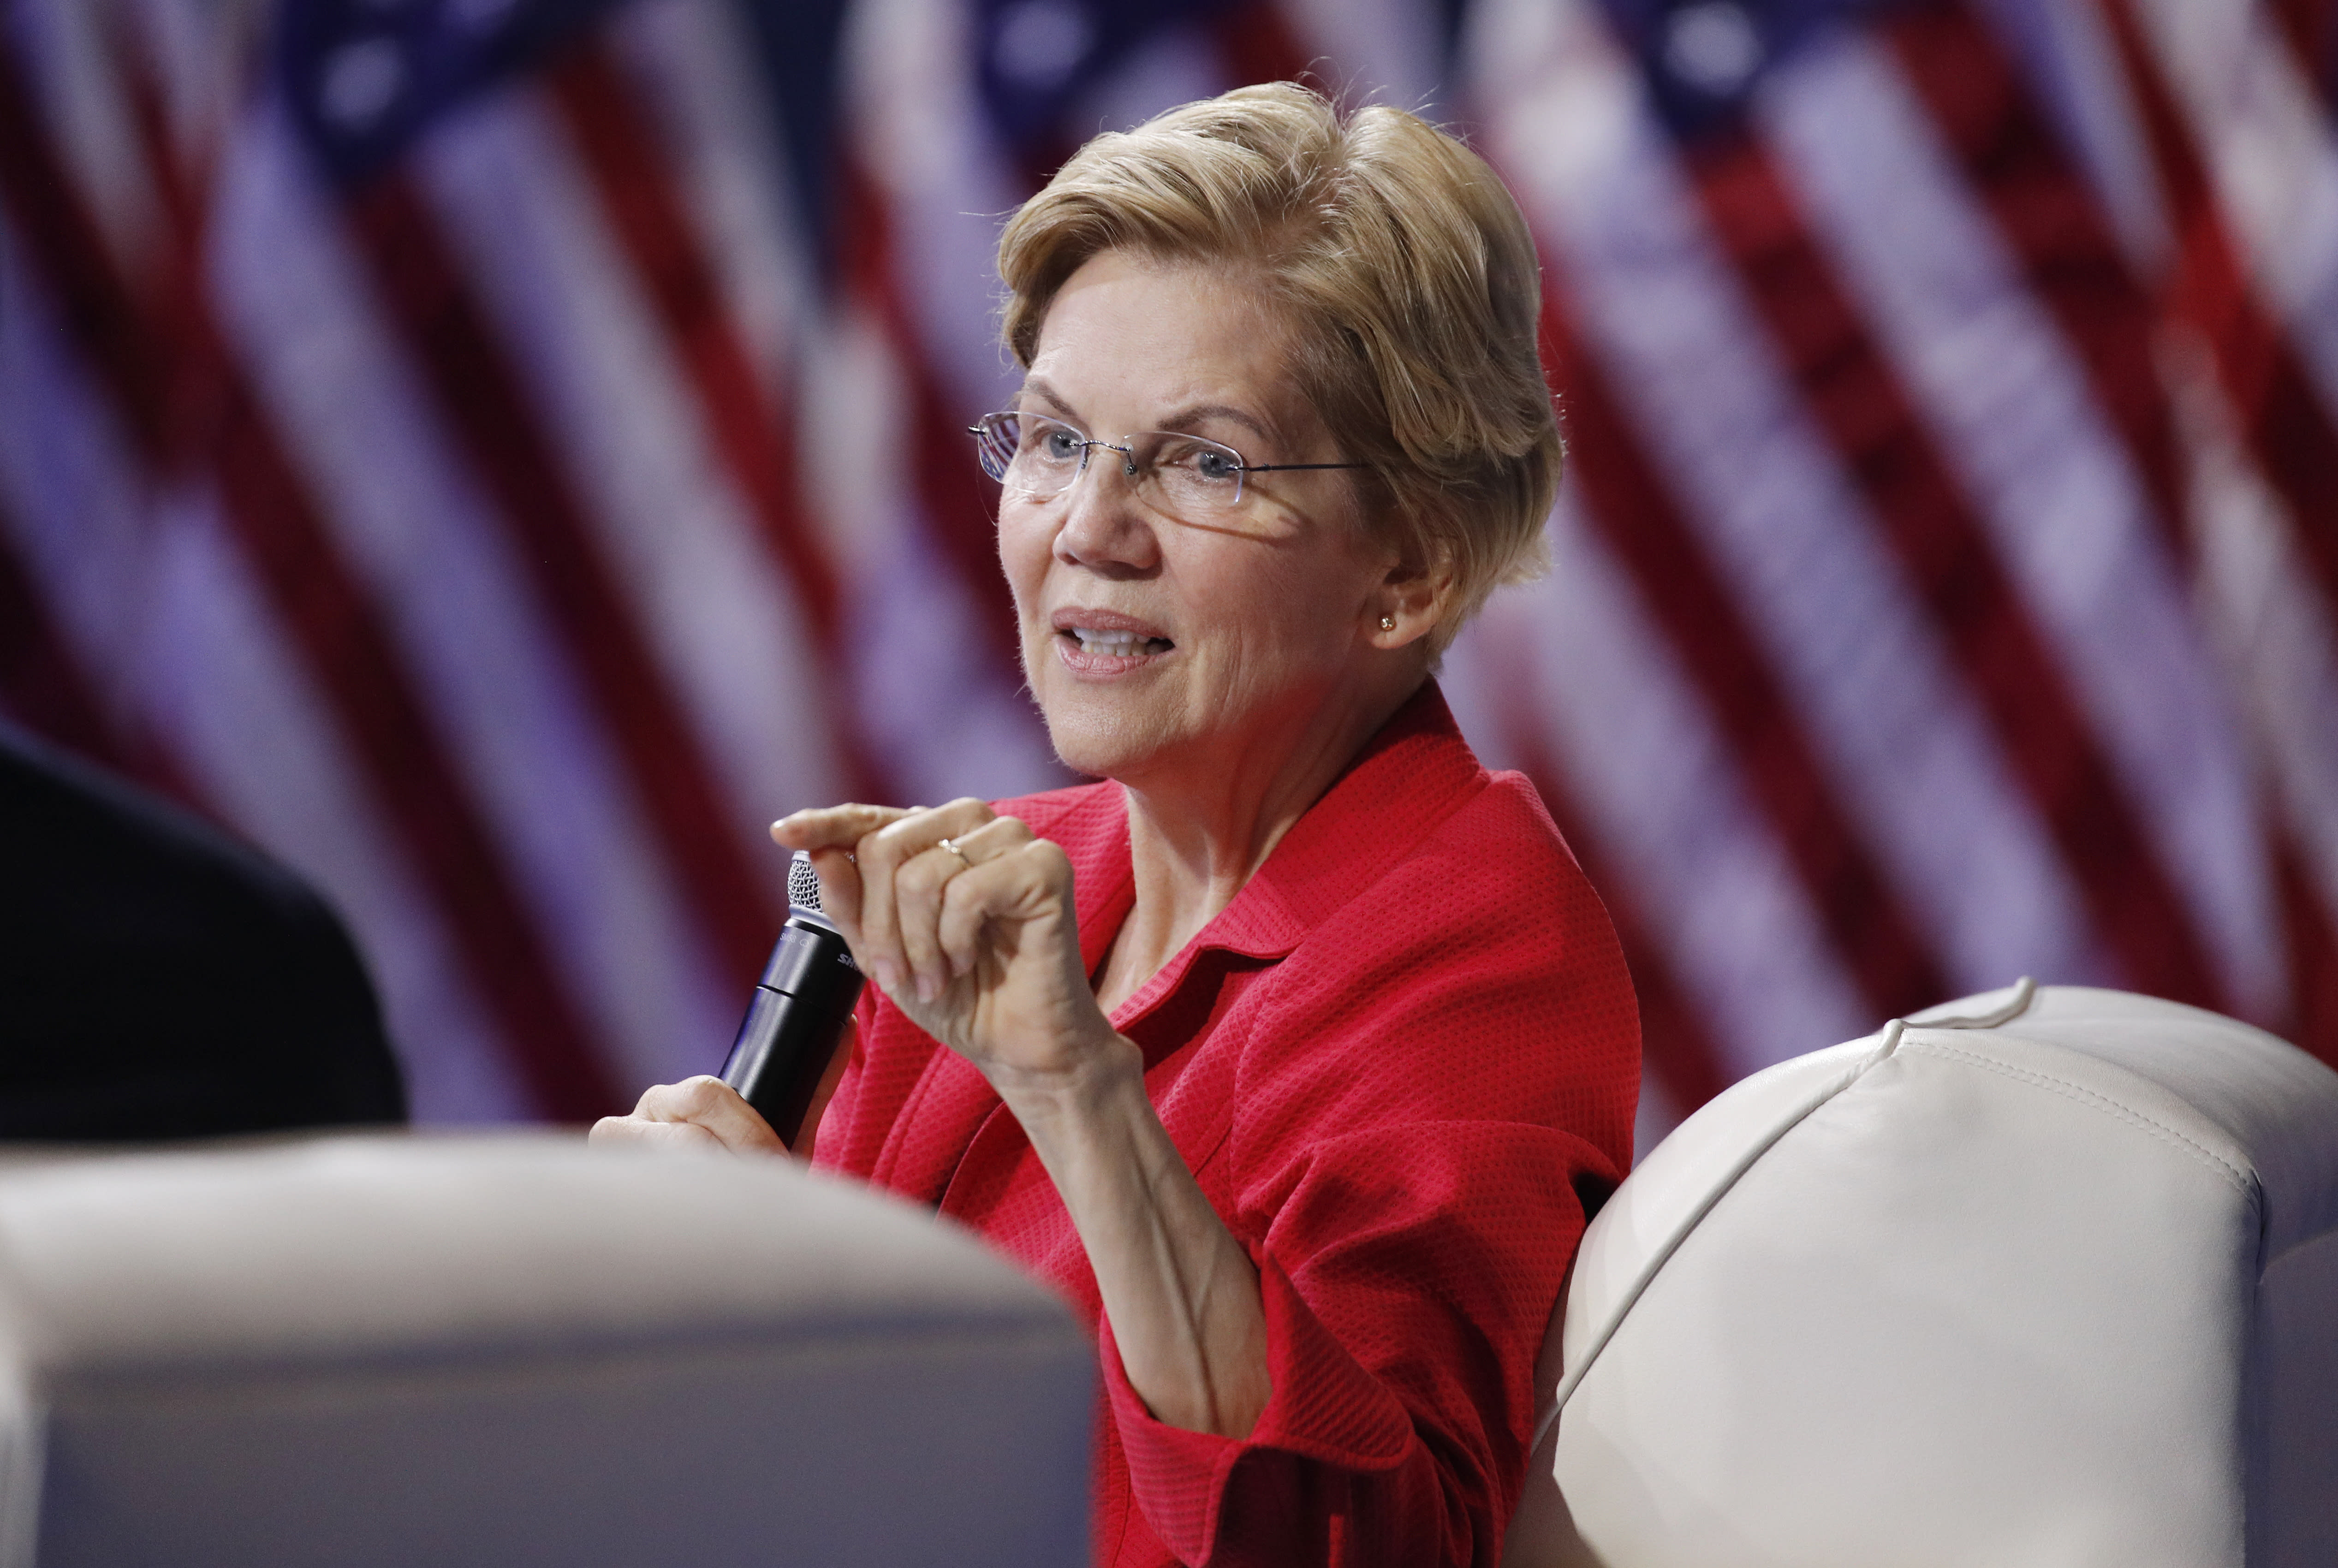 In shift, Elizabeth Warren says she'll forgo big money events if nominated